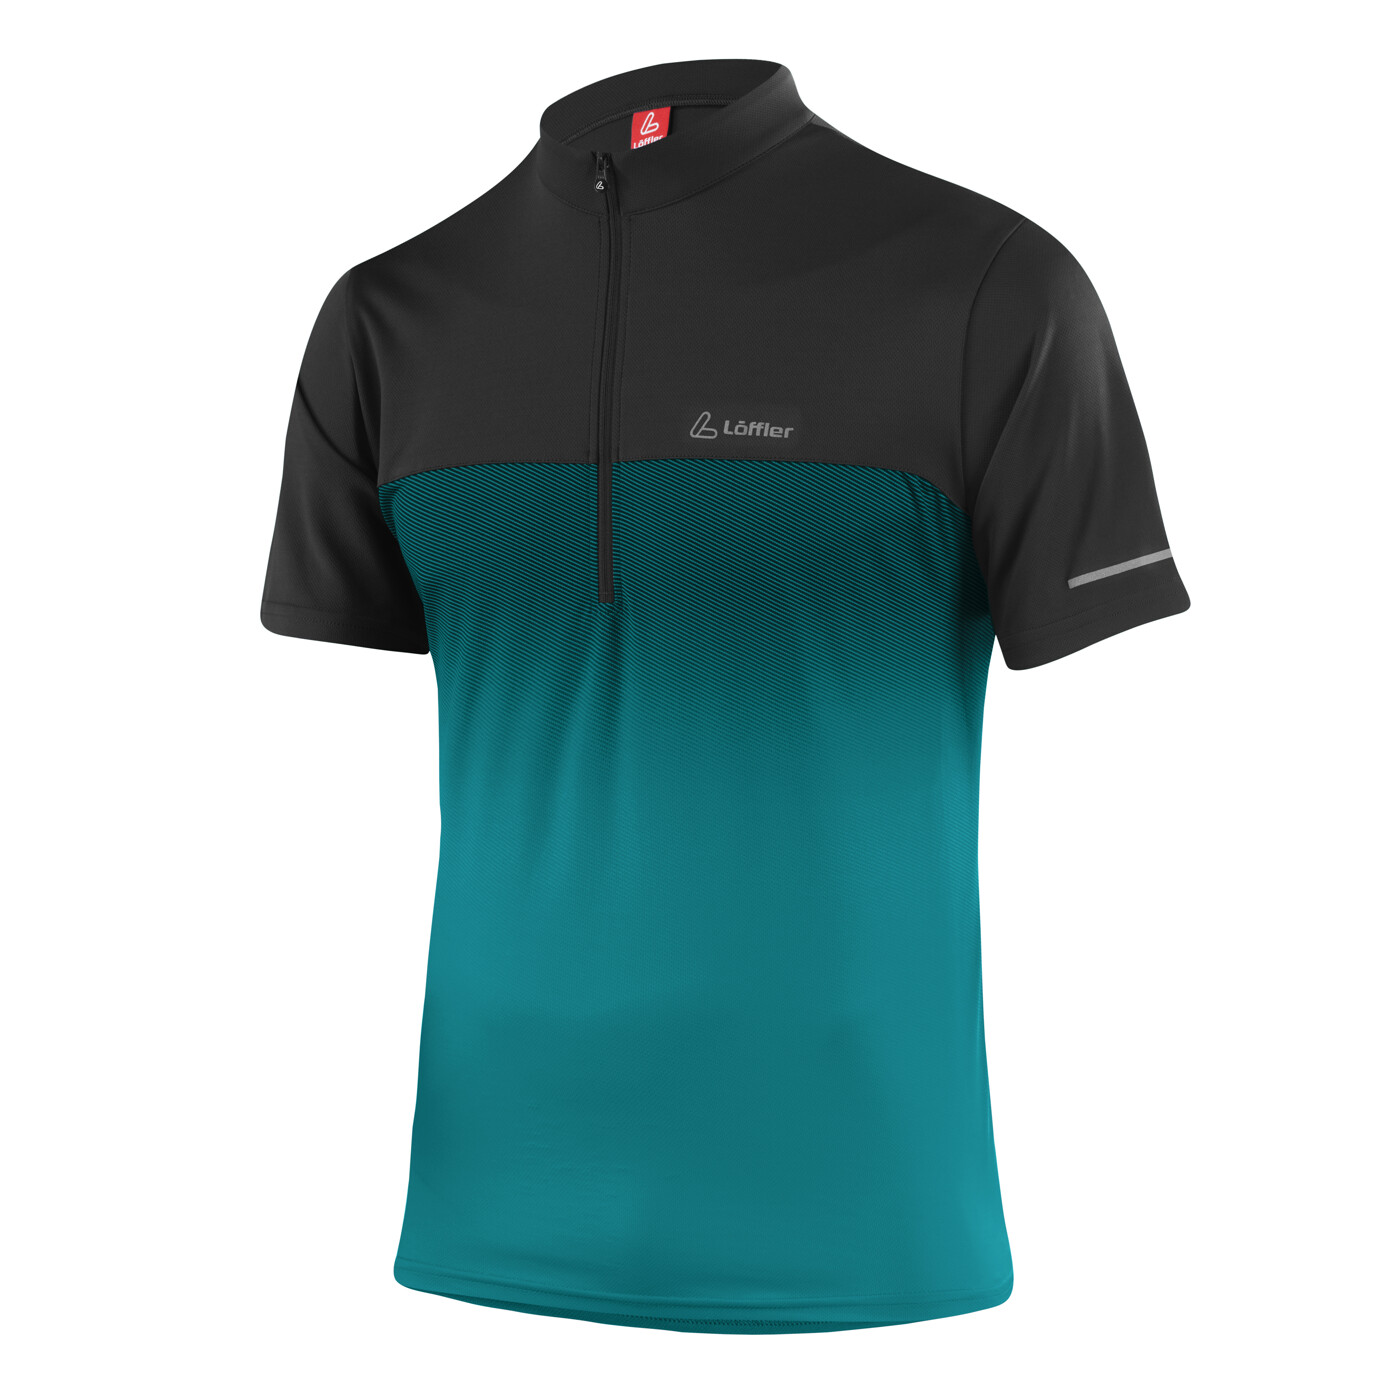 LÖFFLER M BIKE SHIRT HZ FLOW 3.0 - Herren